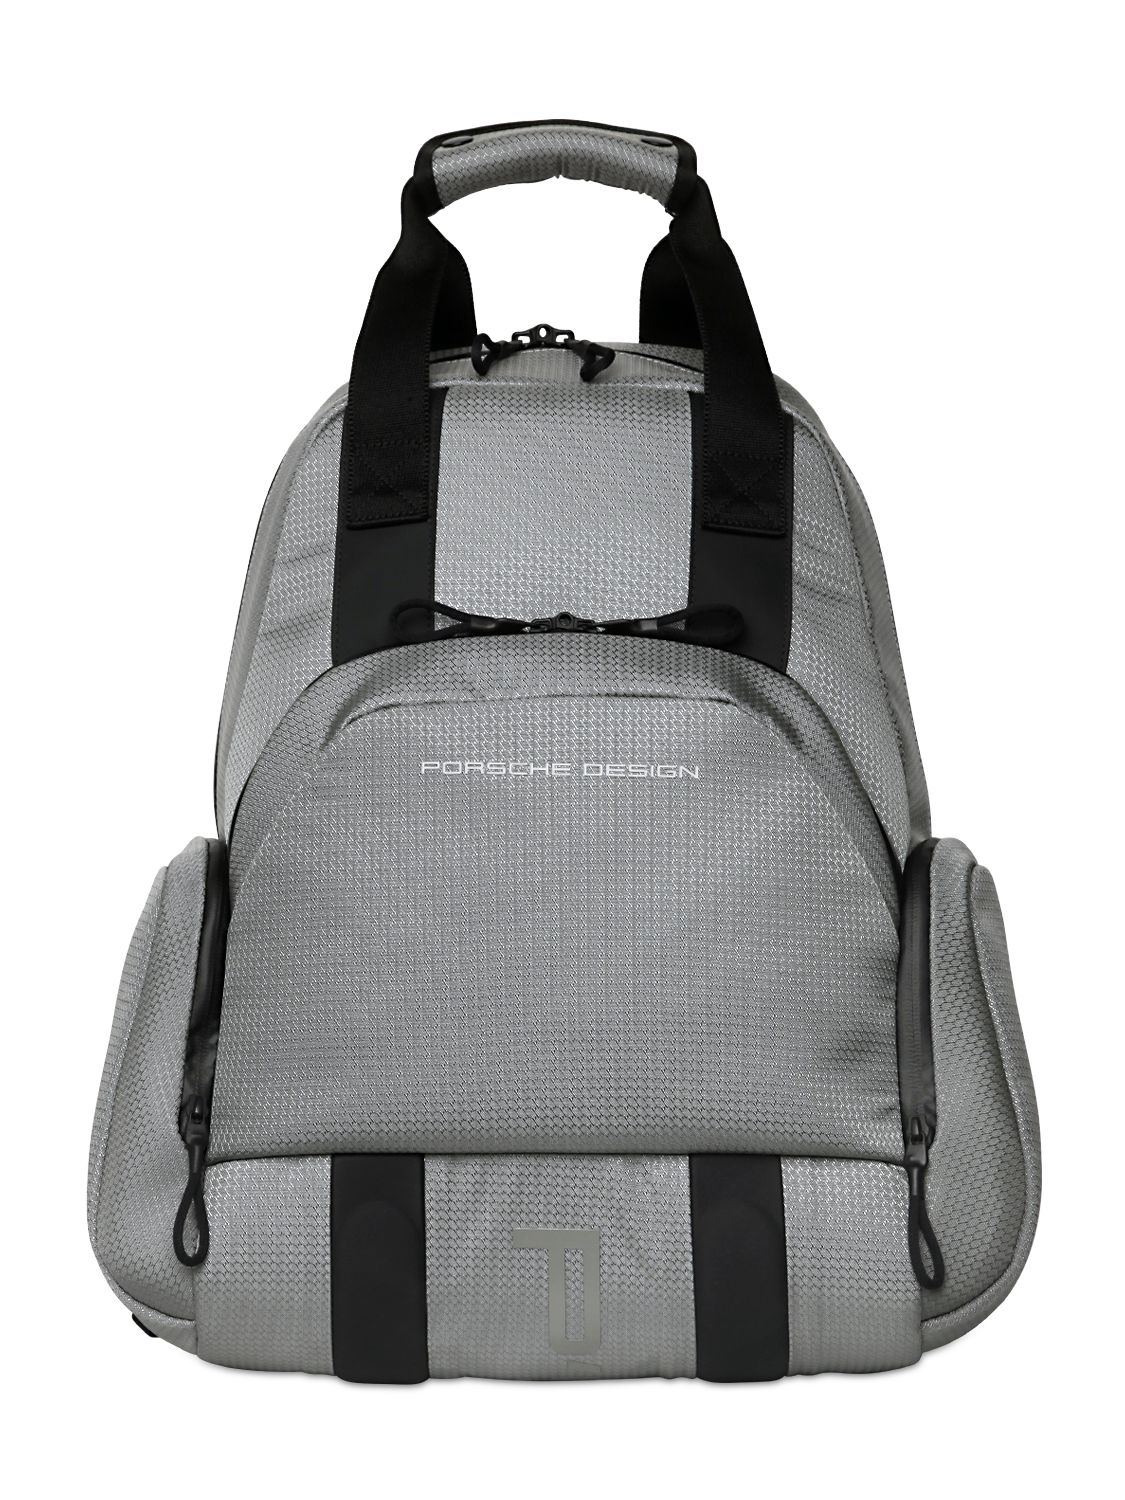 856040a37801 Porsche Design Water Resistant Nylon Jacquard Backpack in Metallic ...